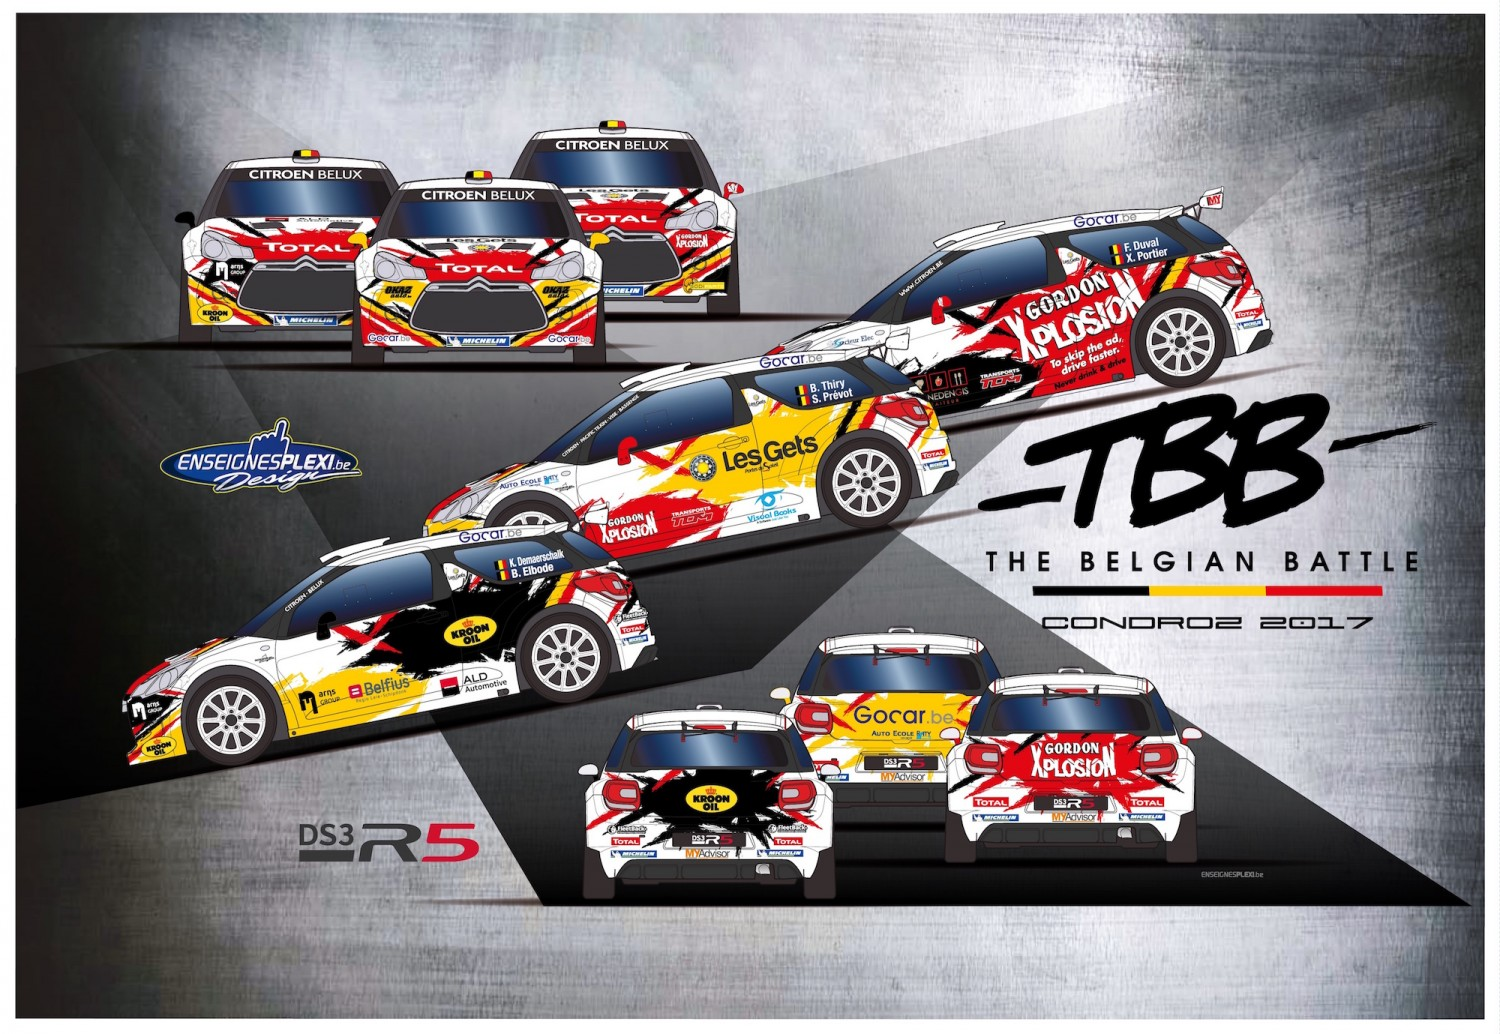 Condroz Rally - Thiry, Duval en Demaerschalk vertegenwoordigen Citroën in  'Belgian Battle'